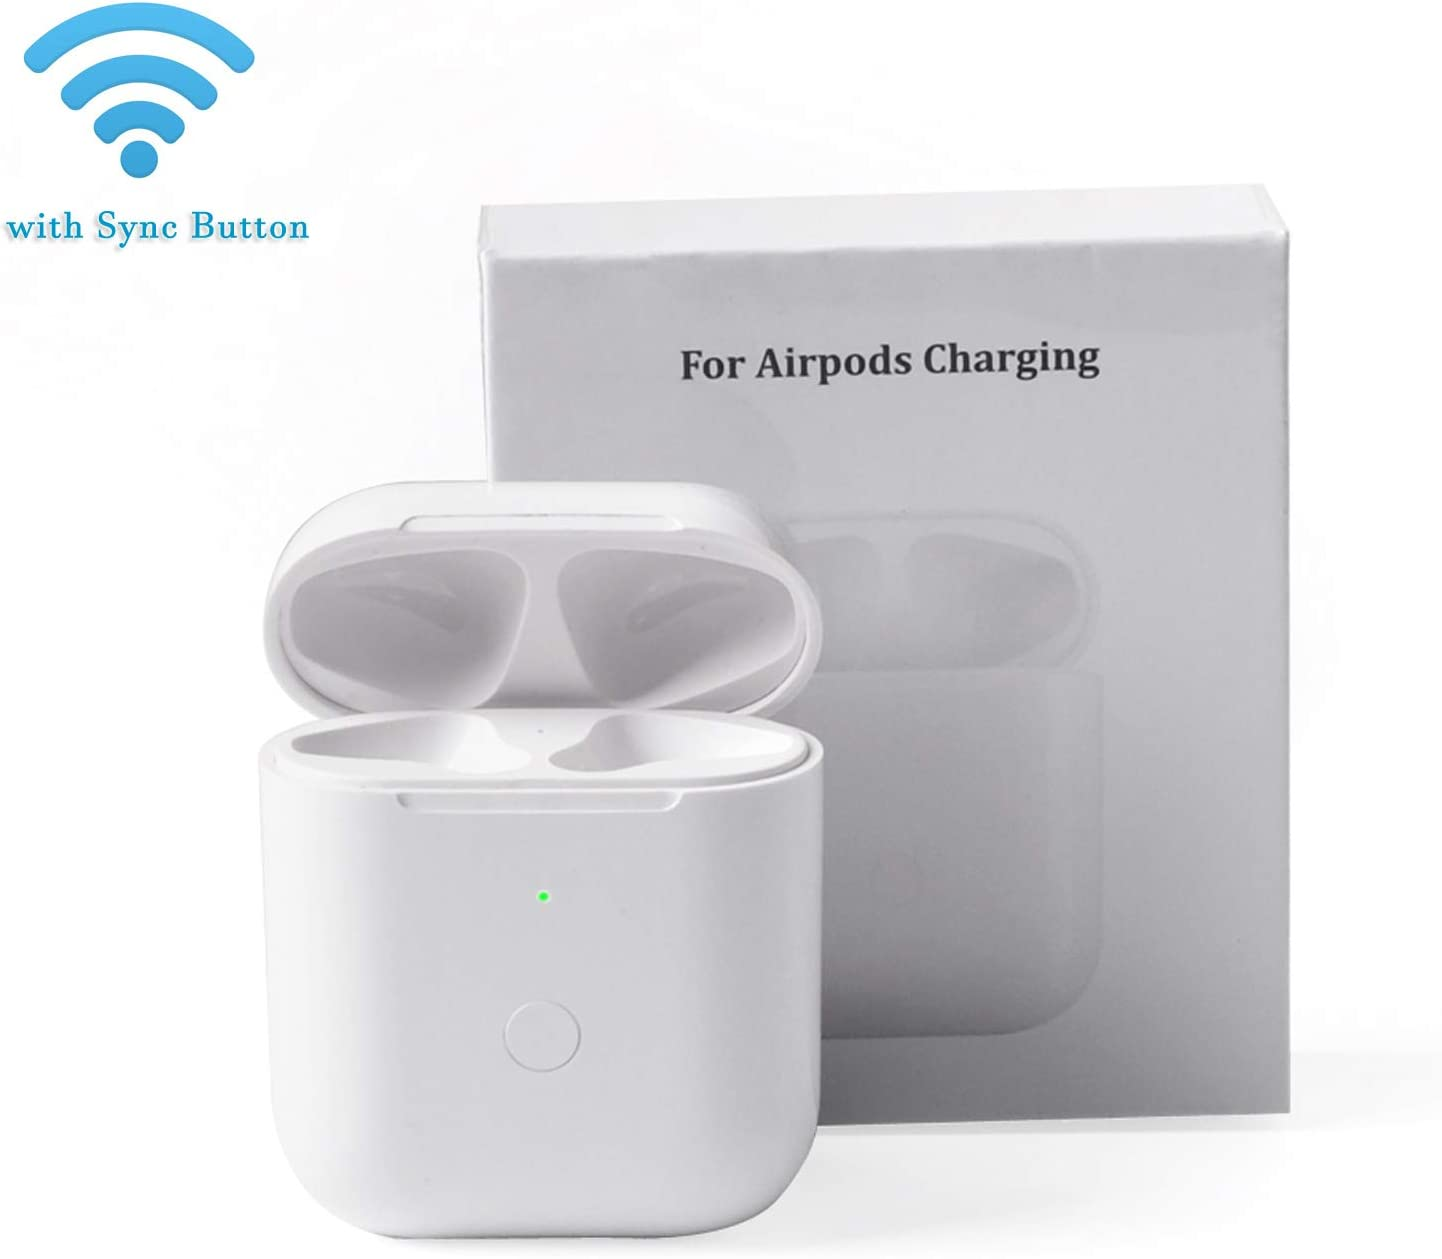 BLEAKTEIR AirPods Charging Case AirPods Charger Case with Sync Button for Charging Air Pod One Tap Set-Up Pairing